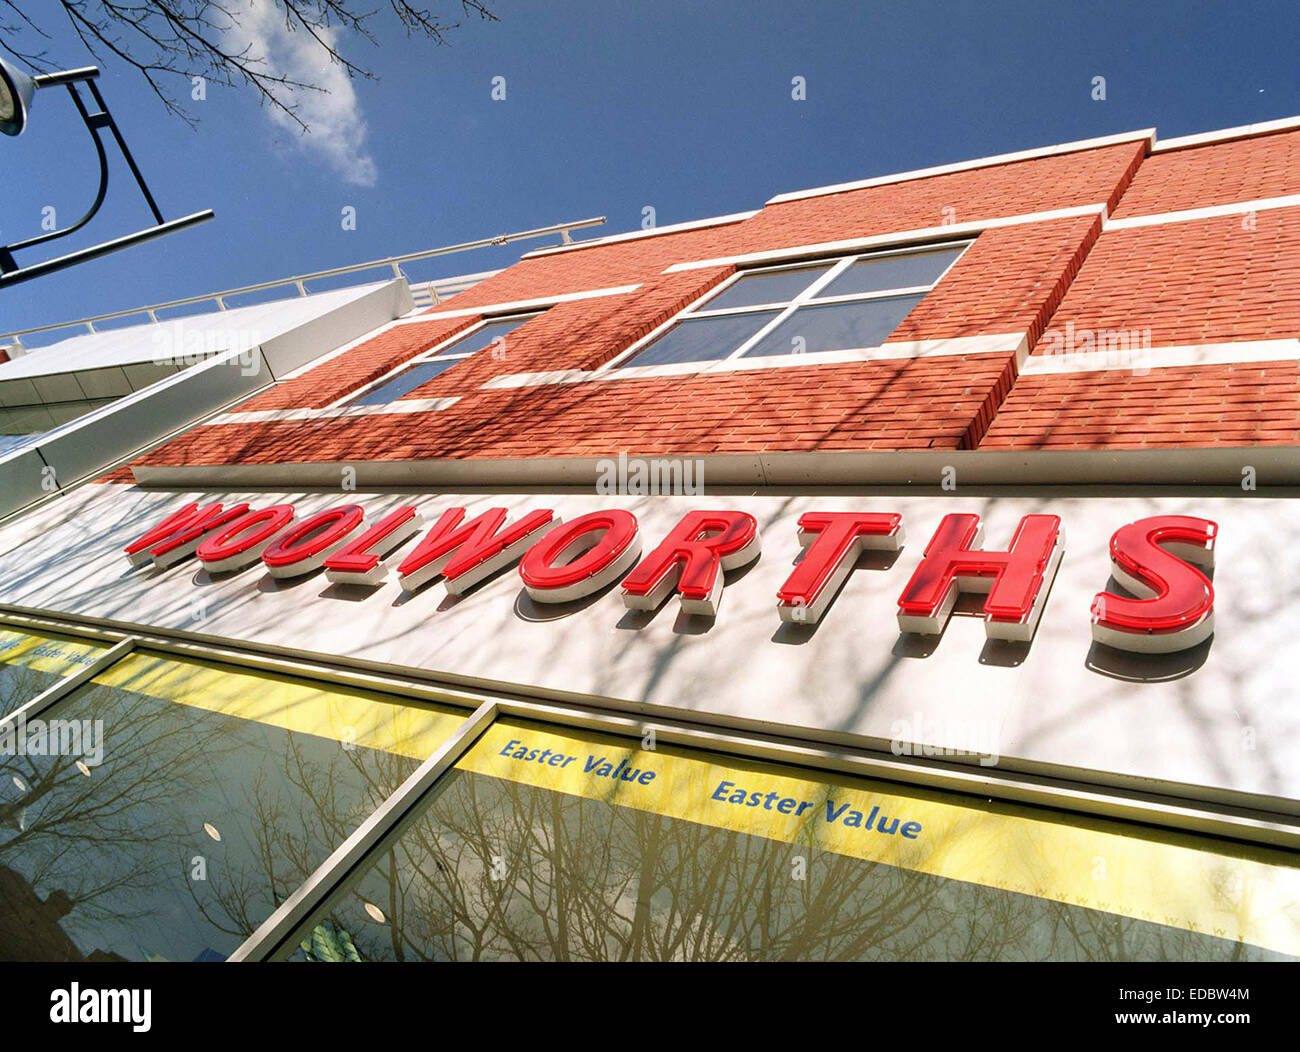 Exterior of a Woolworth store. The company went into administration in 2008. - Stock Image